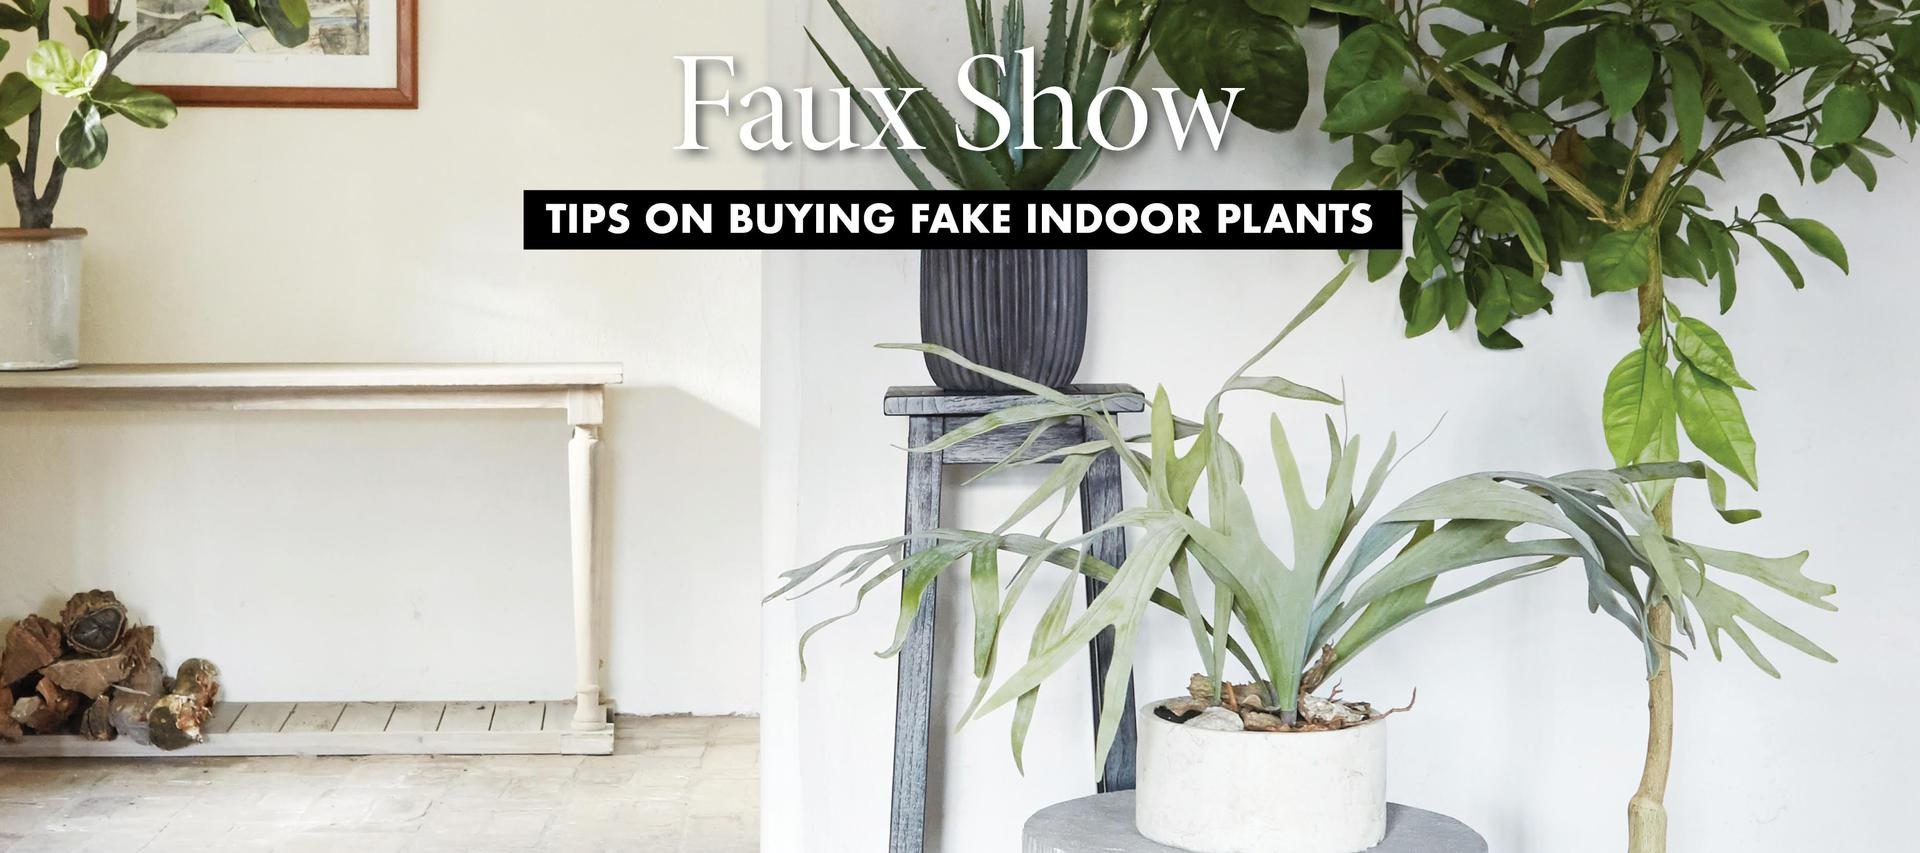 Faux Show: Tips on Buying Fake Indoor Plants